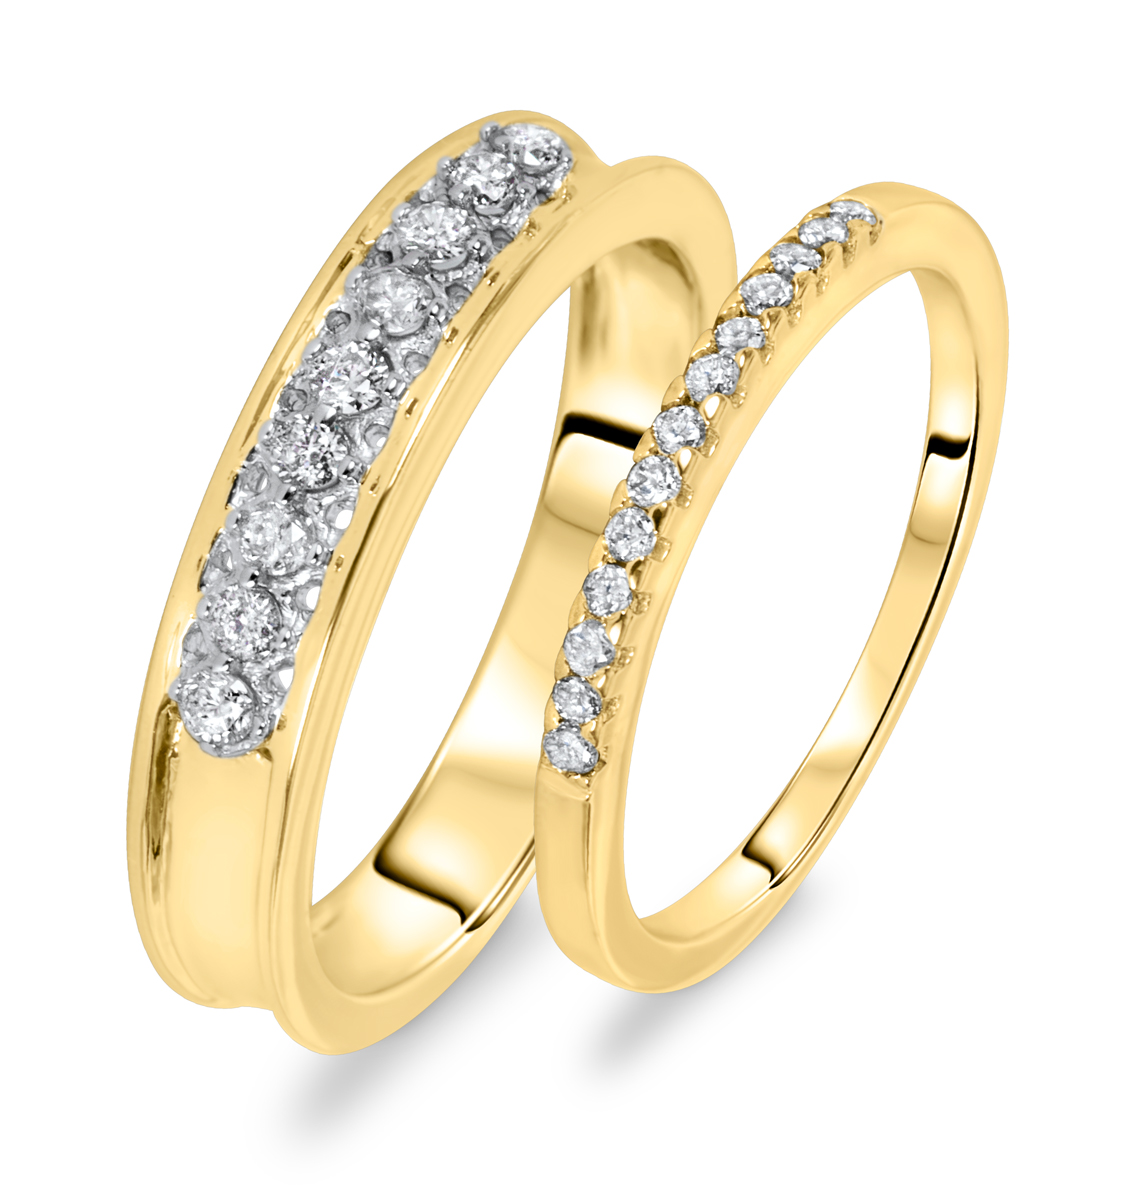 3 8 CT TW Diamond His And Hers Wedding Rings 14K Yellow Gold